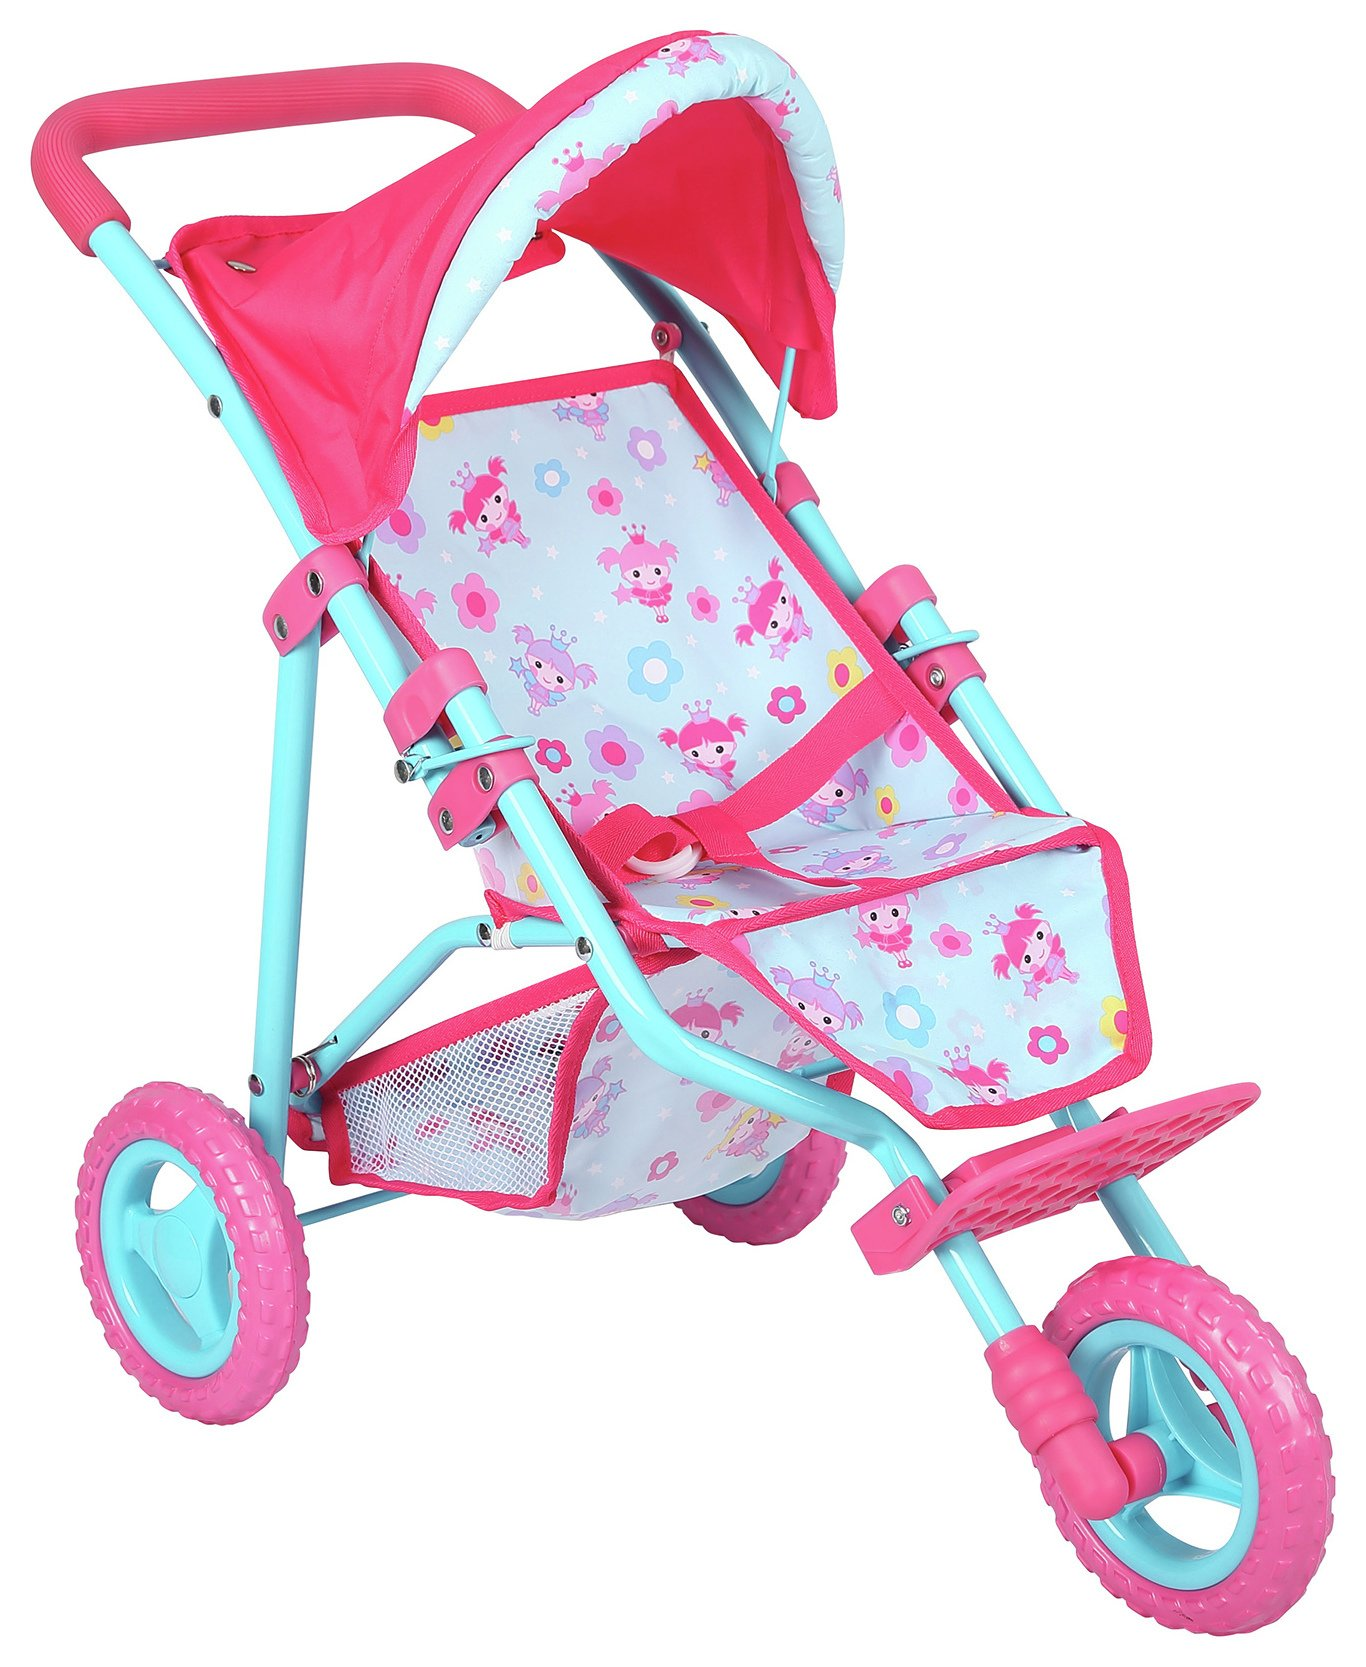 3 Wheel Prams Argos Dollsworld Deluxe 3 Wheel Fold Stroller 6809047 Argos